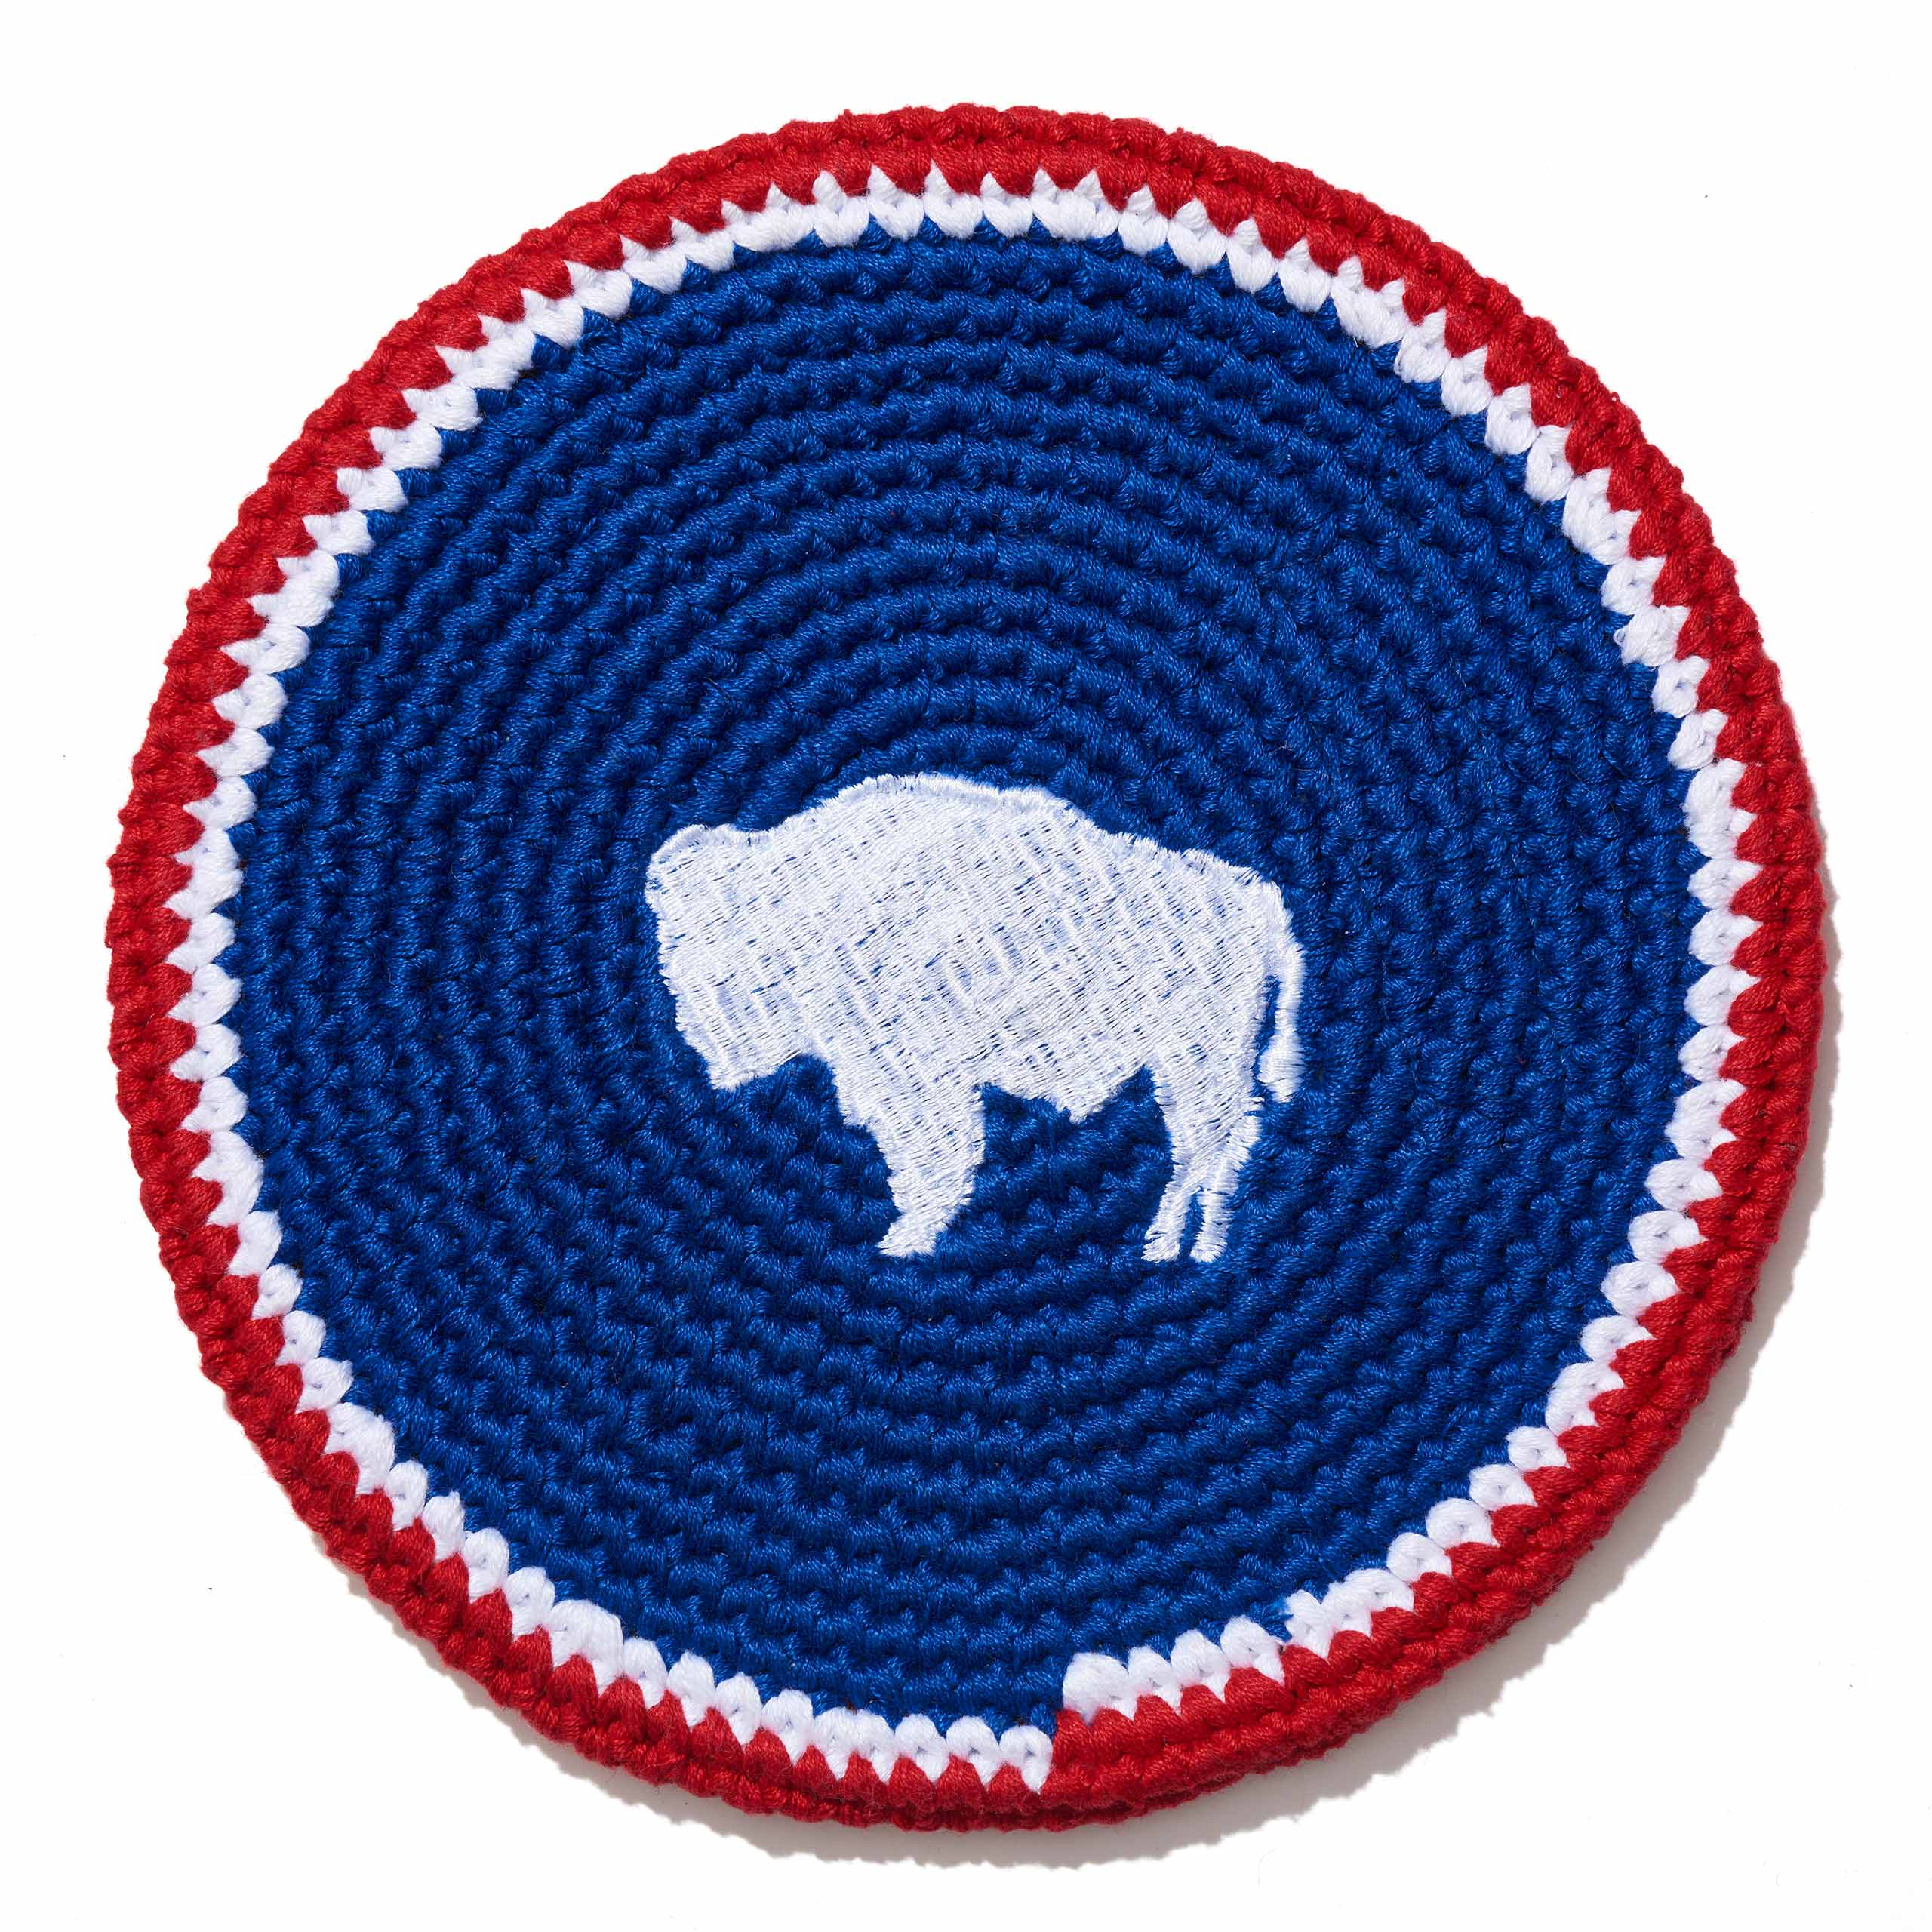 Wyoming Flag Disc-Buena Onda Experience